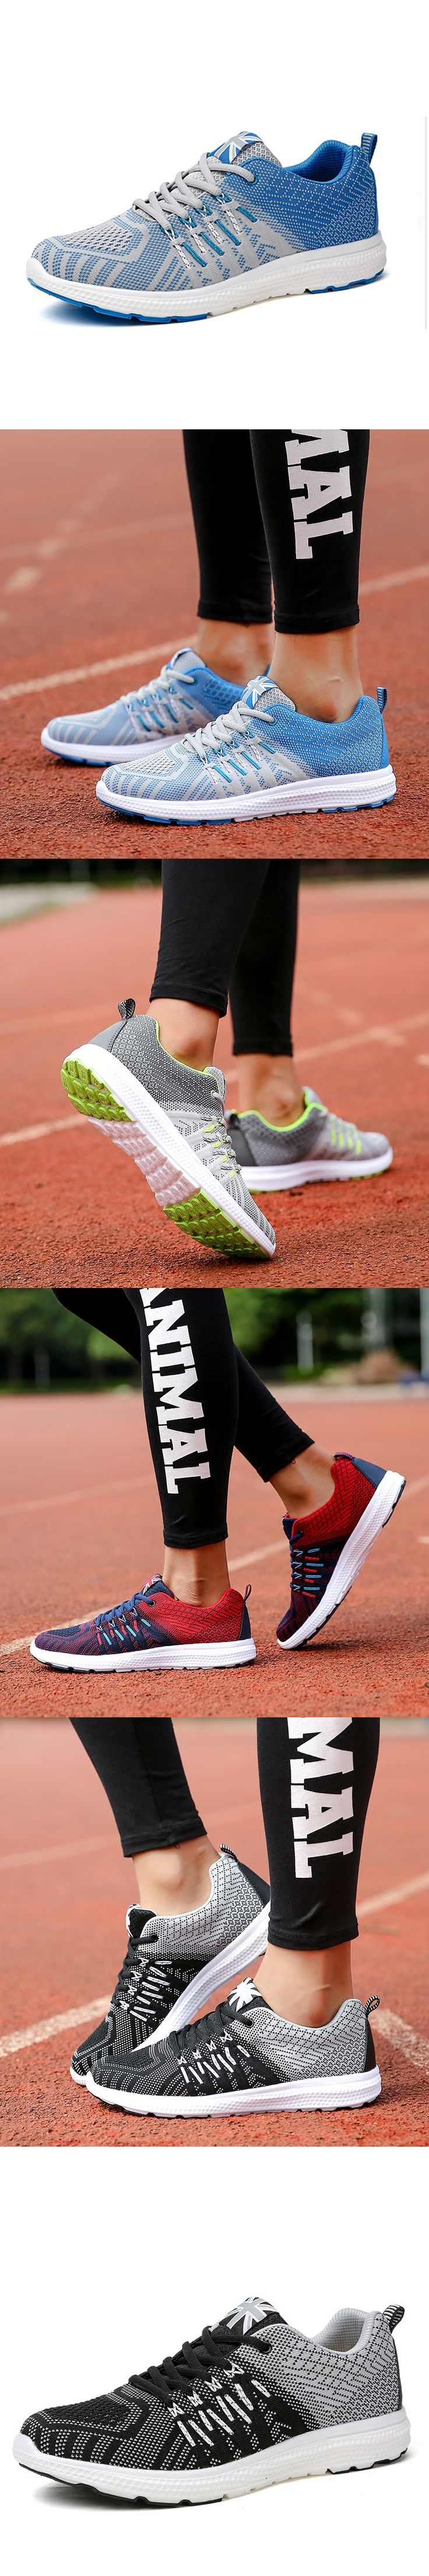 2017 summer men Air Running Shoes lace up outdoor sport sneakers male athletic shoes breathable lightweight  zapatos de hombre